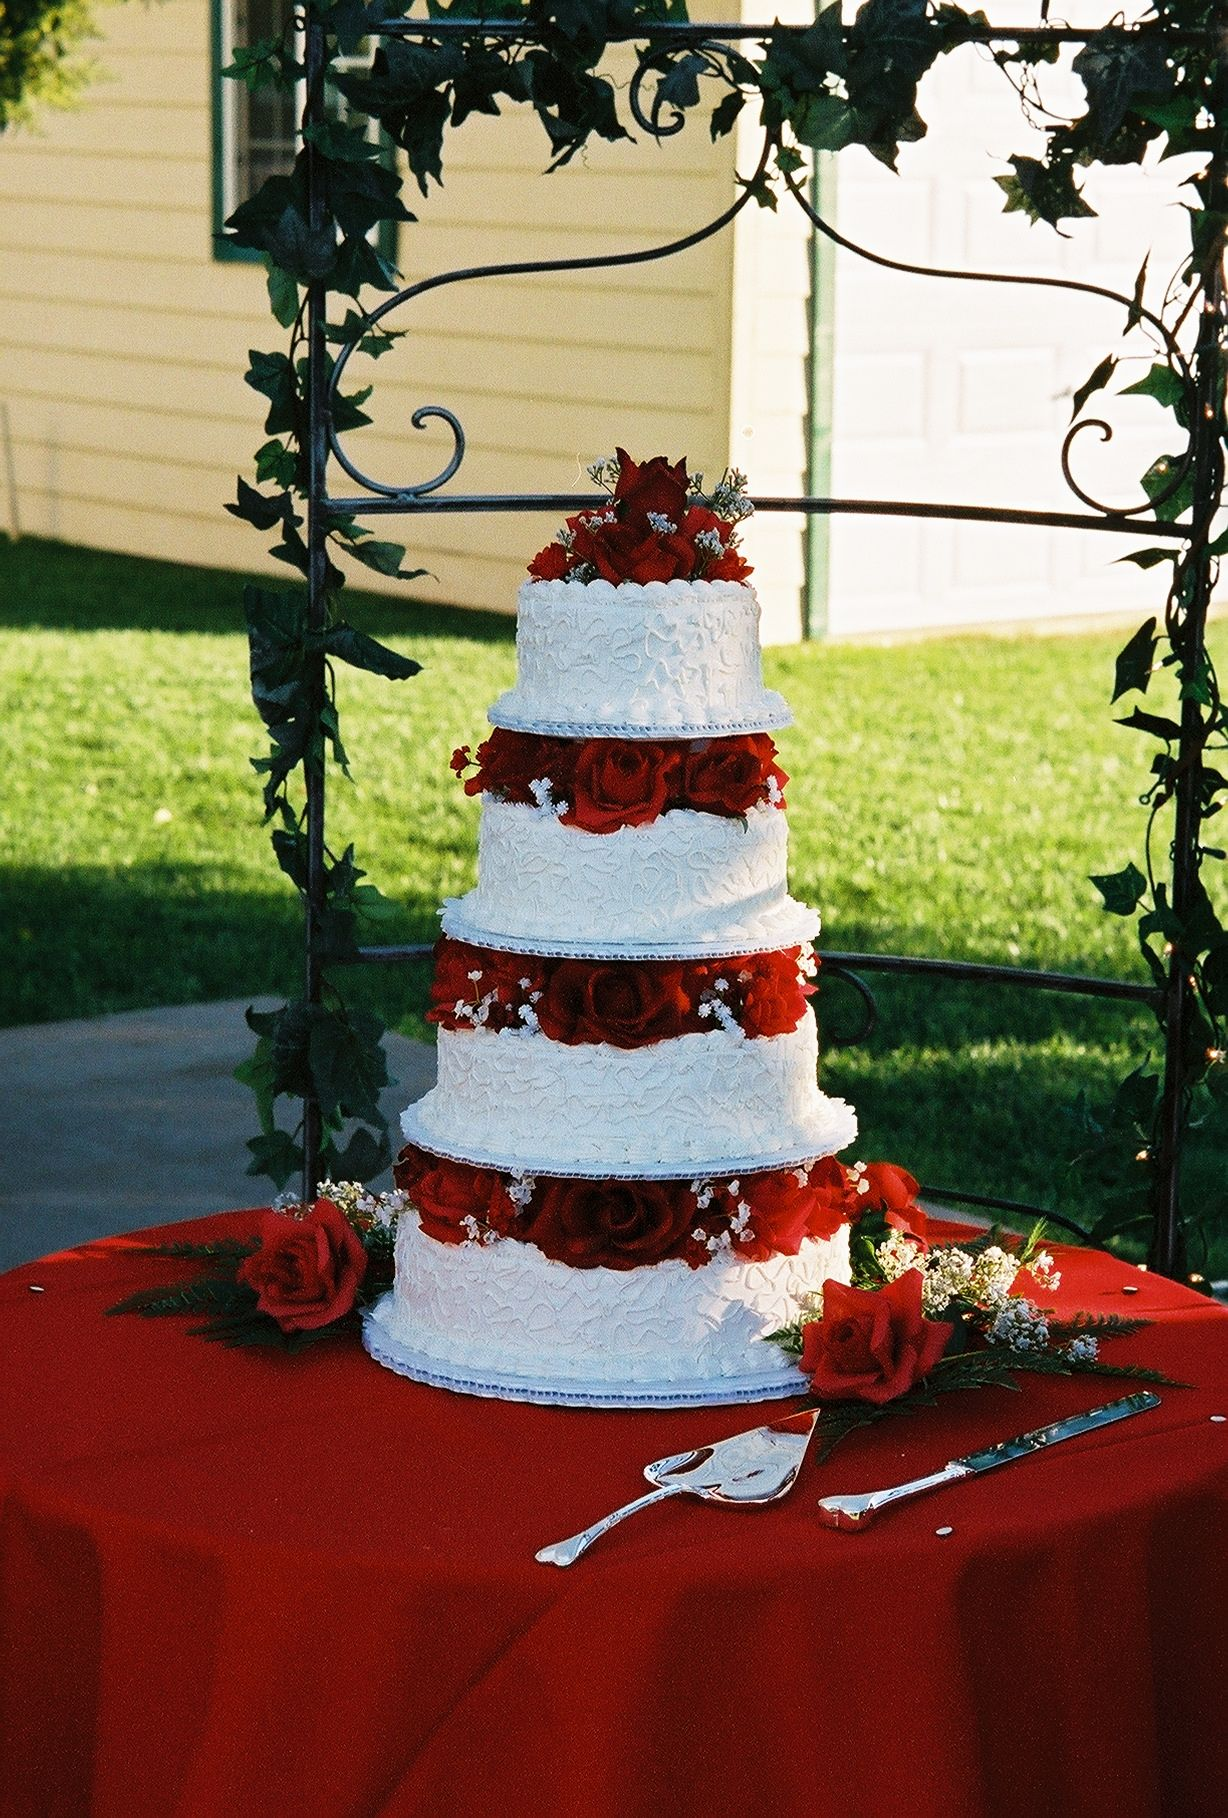 For table visualization ideas wedding cake catering dinner